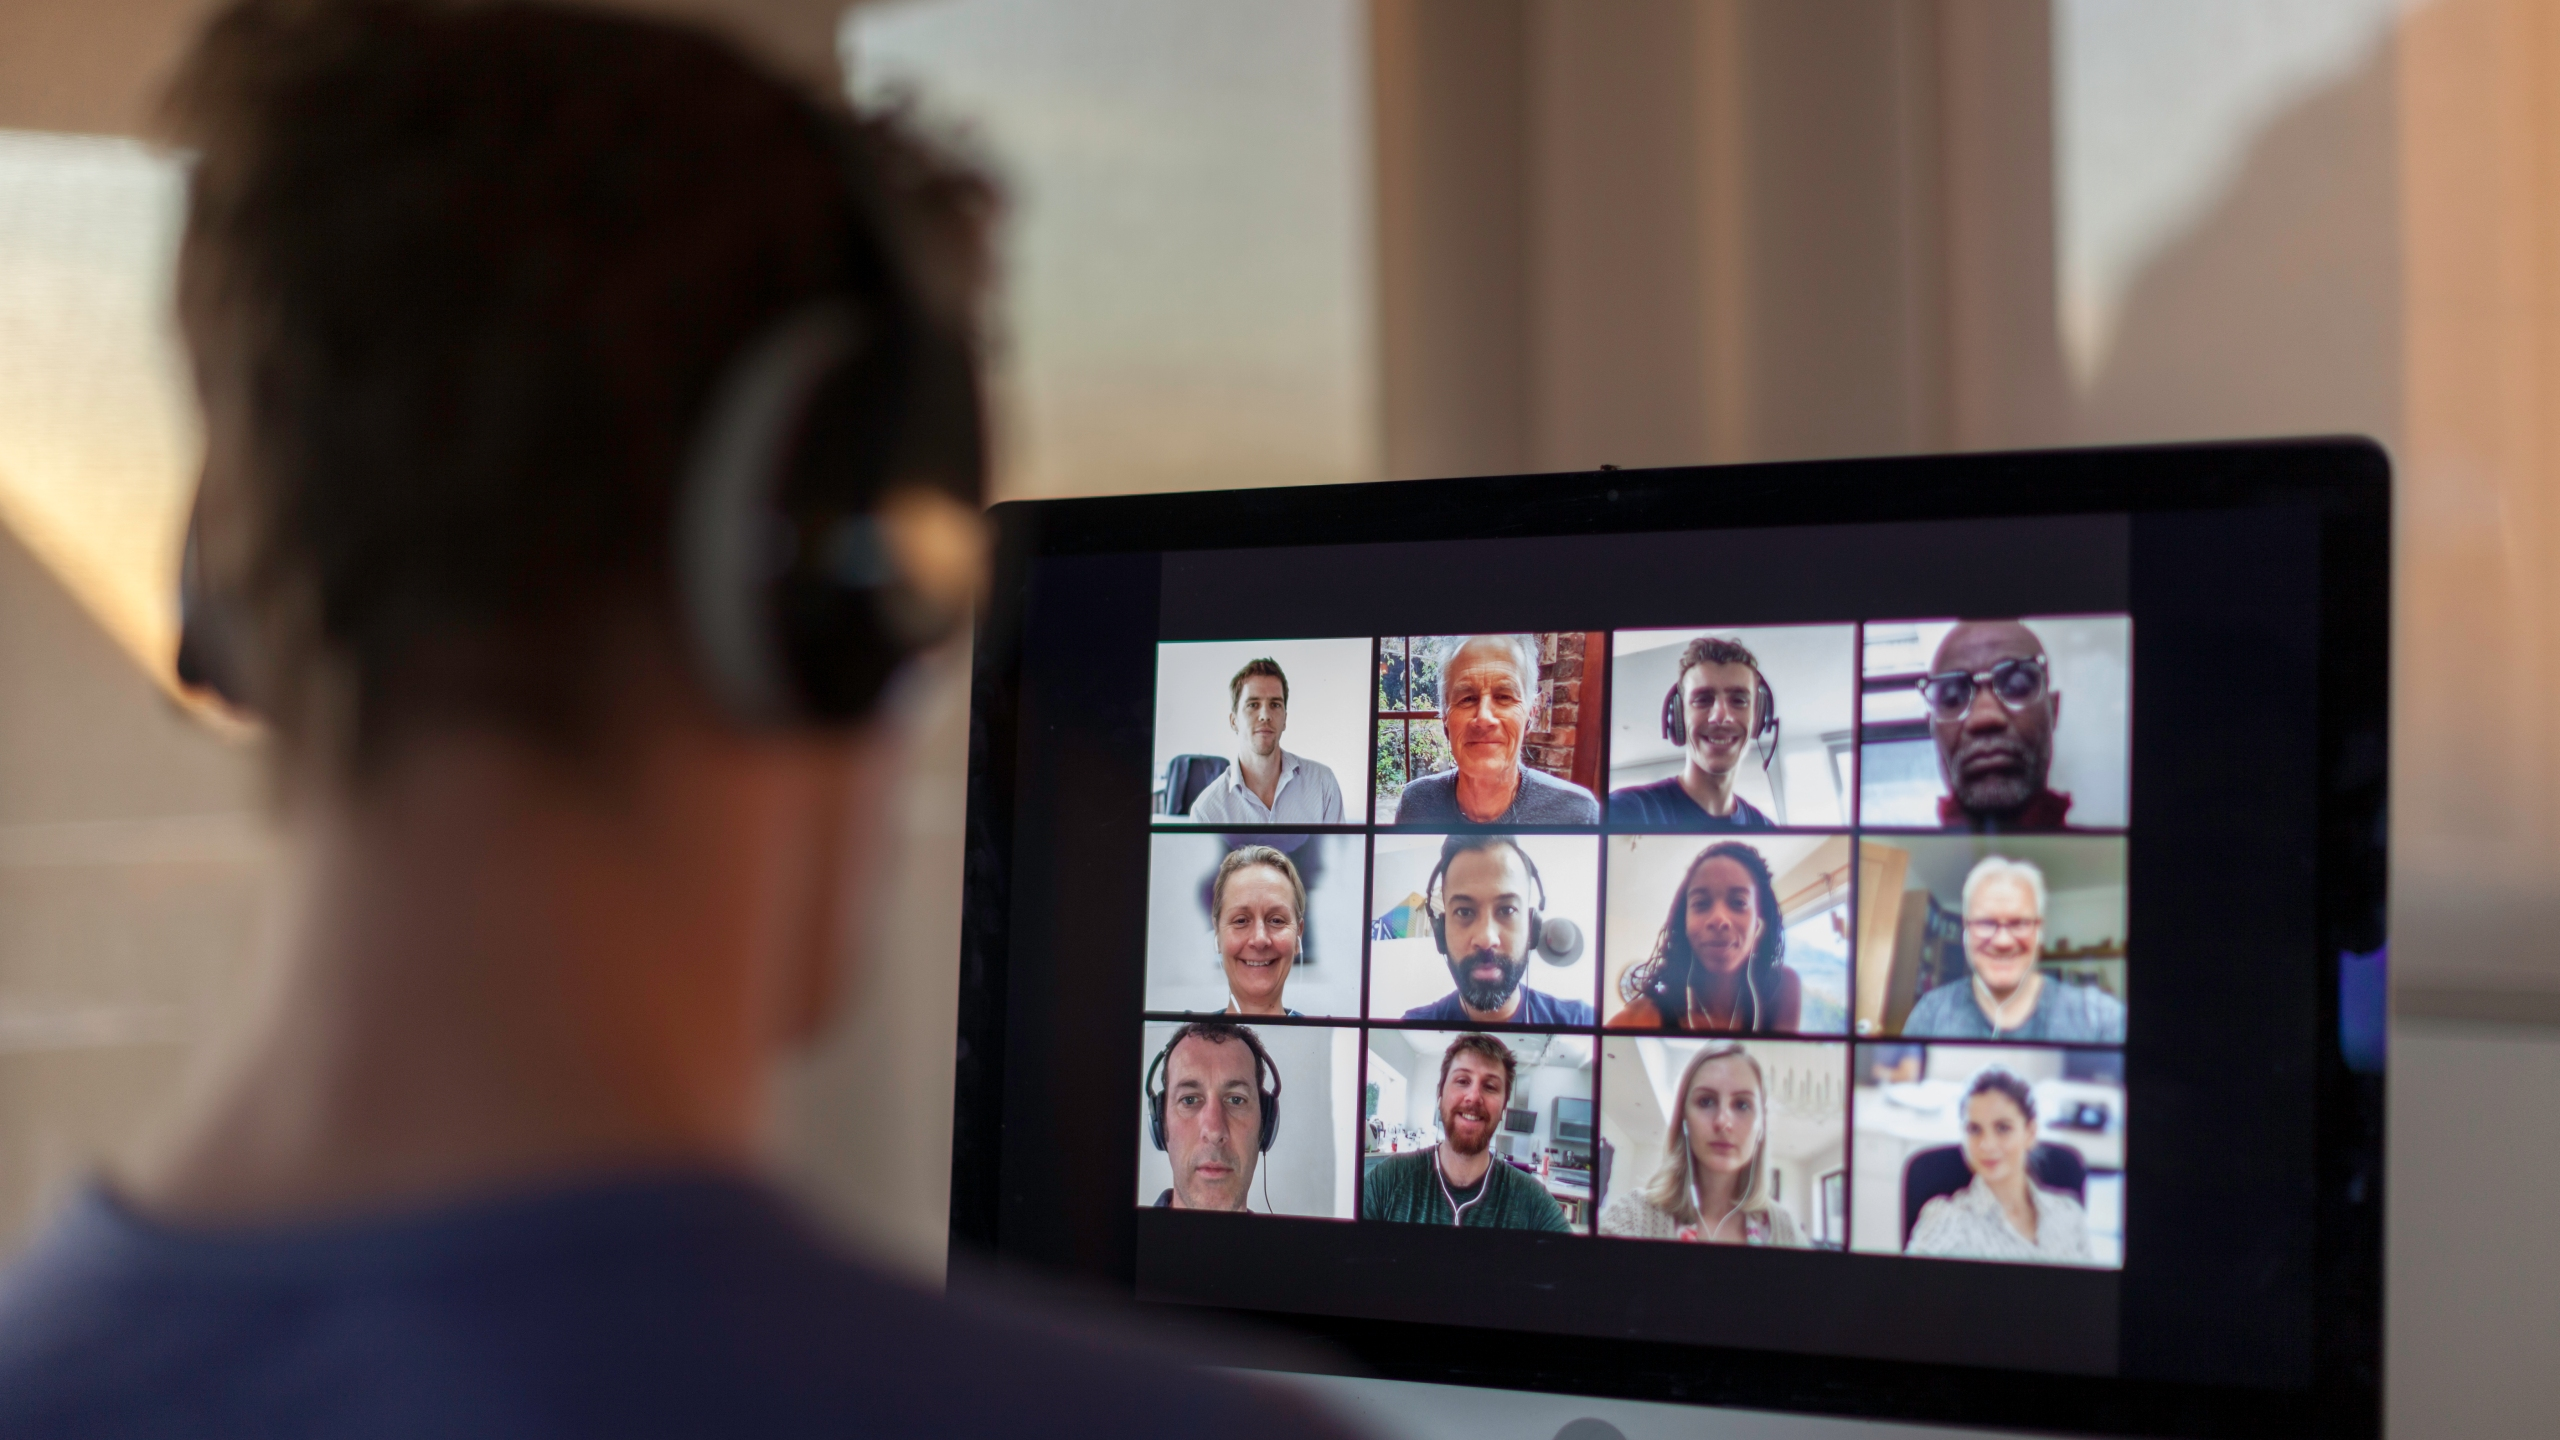 This file photo shows people on a Zoom video call. (Getty Images)